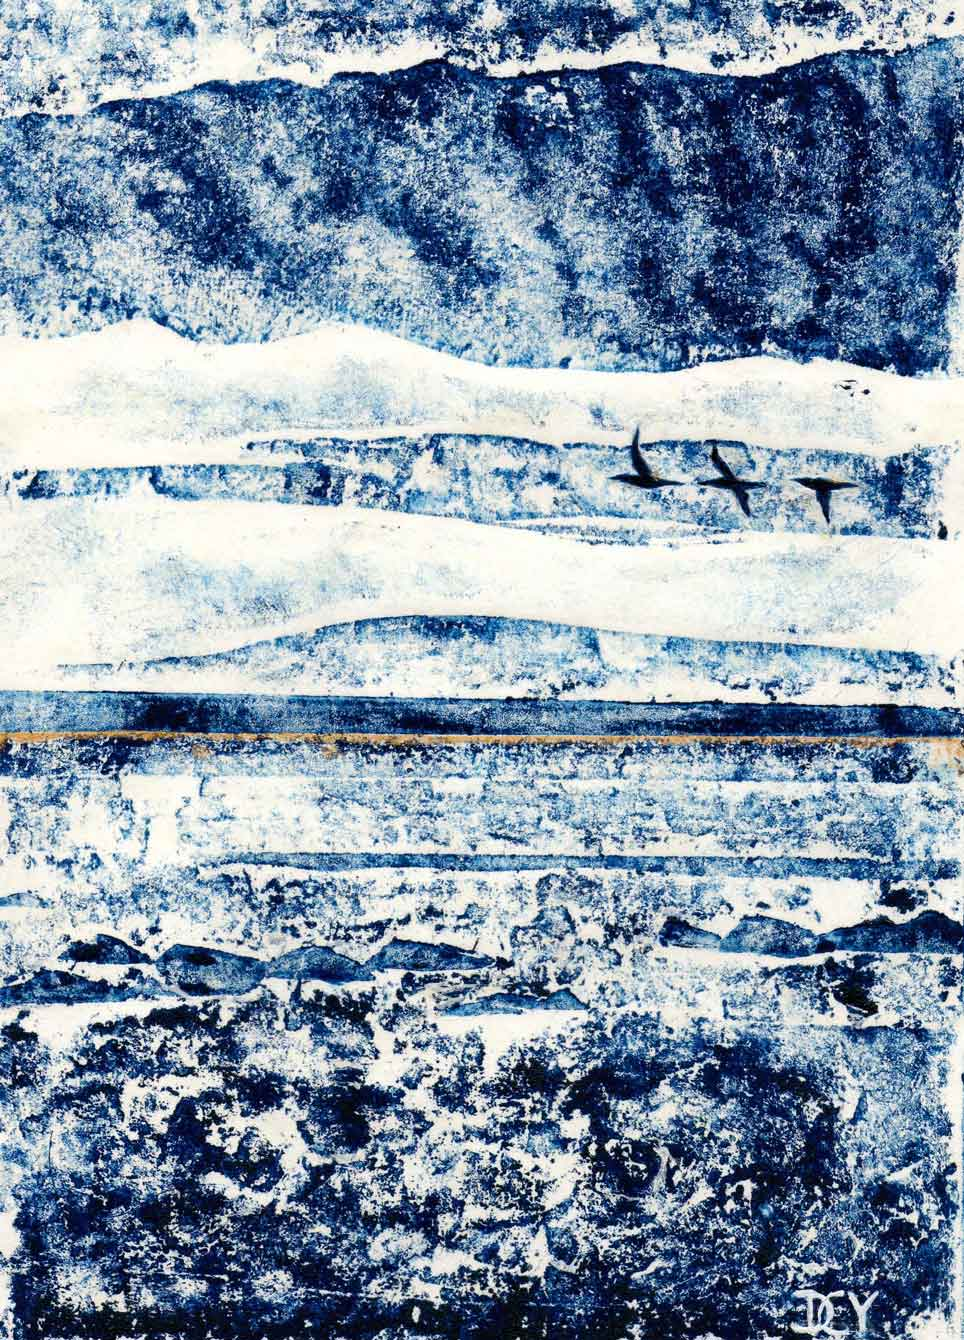 A collagraph monoprint of the sea with gannets flying by artist Diane Youn